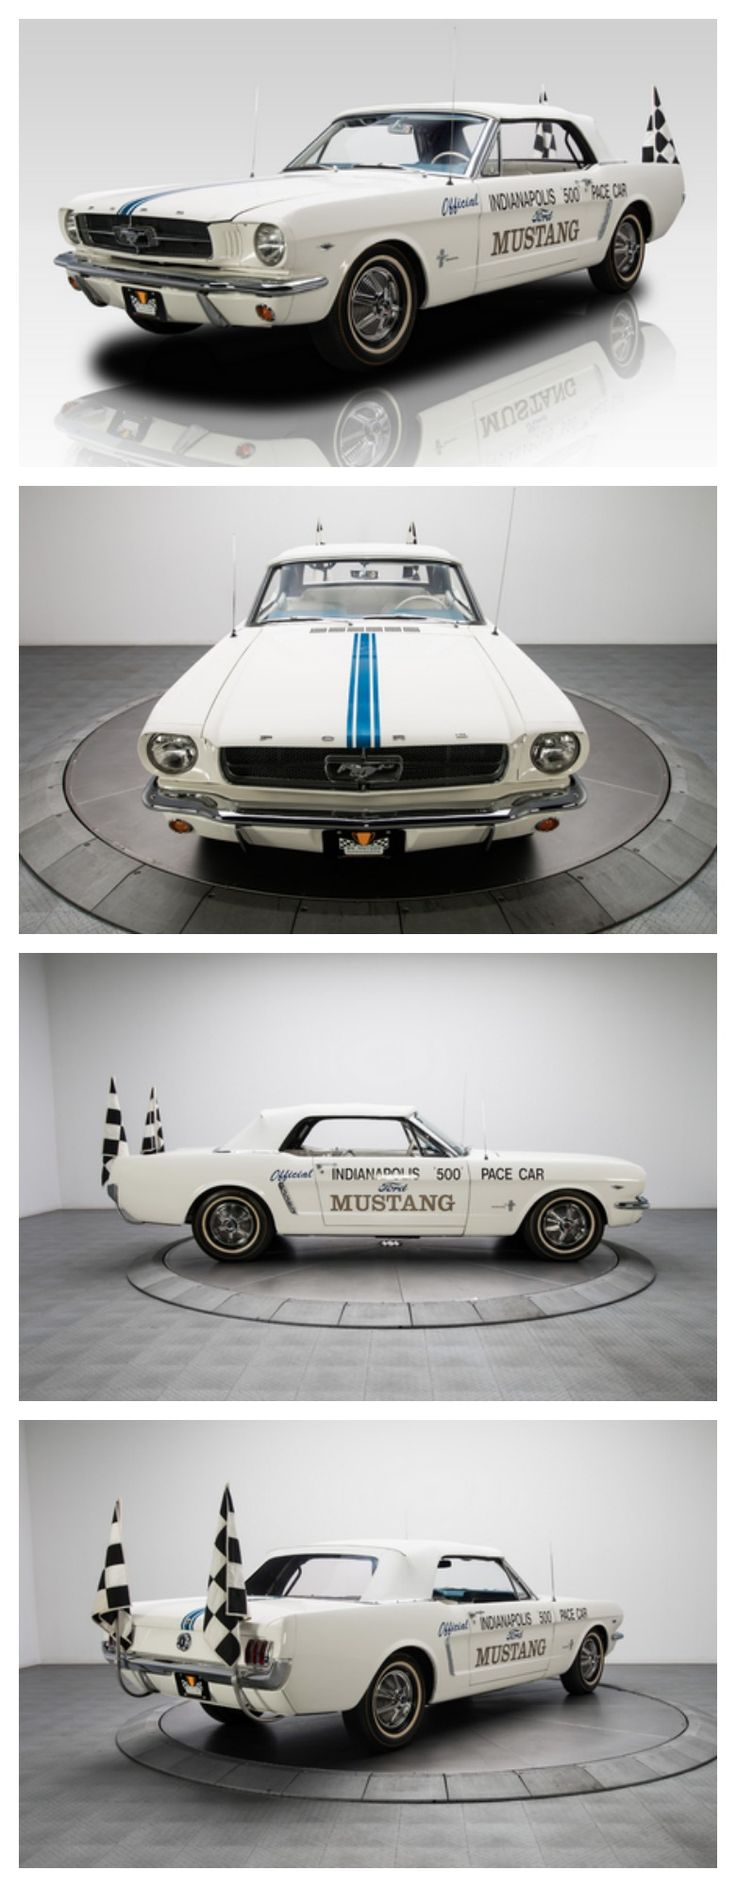 $1 Million Dollars Fro This One Of A Kind #Mustang Pace Car  #ThrowbackThursday